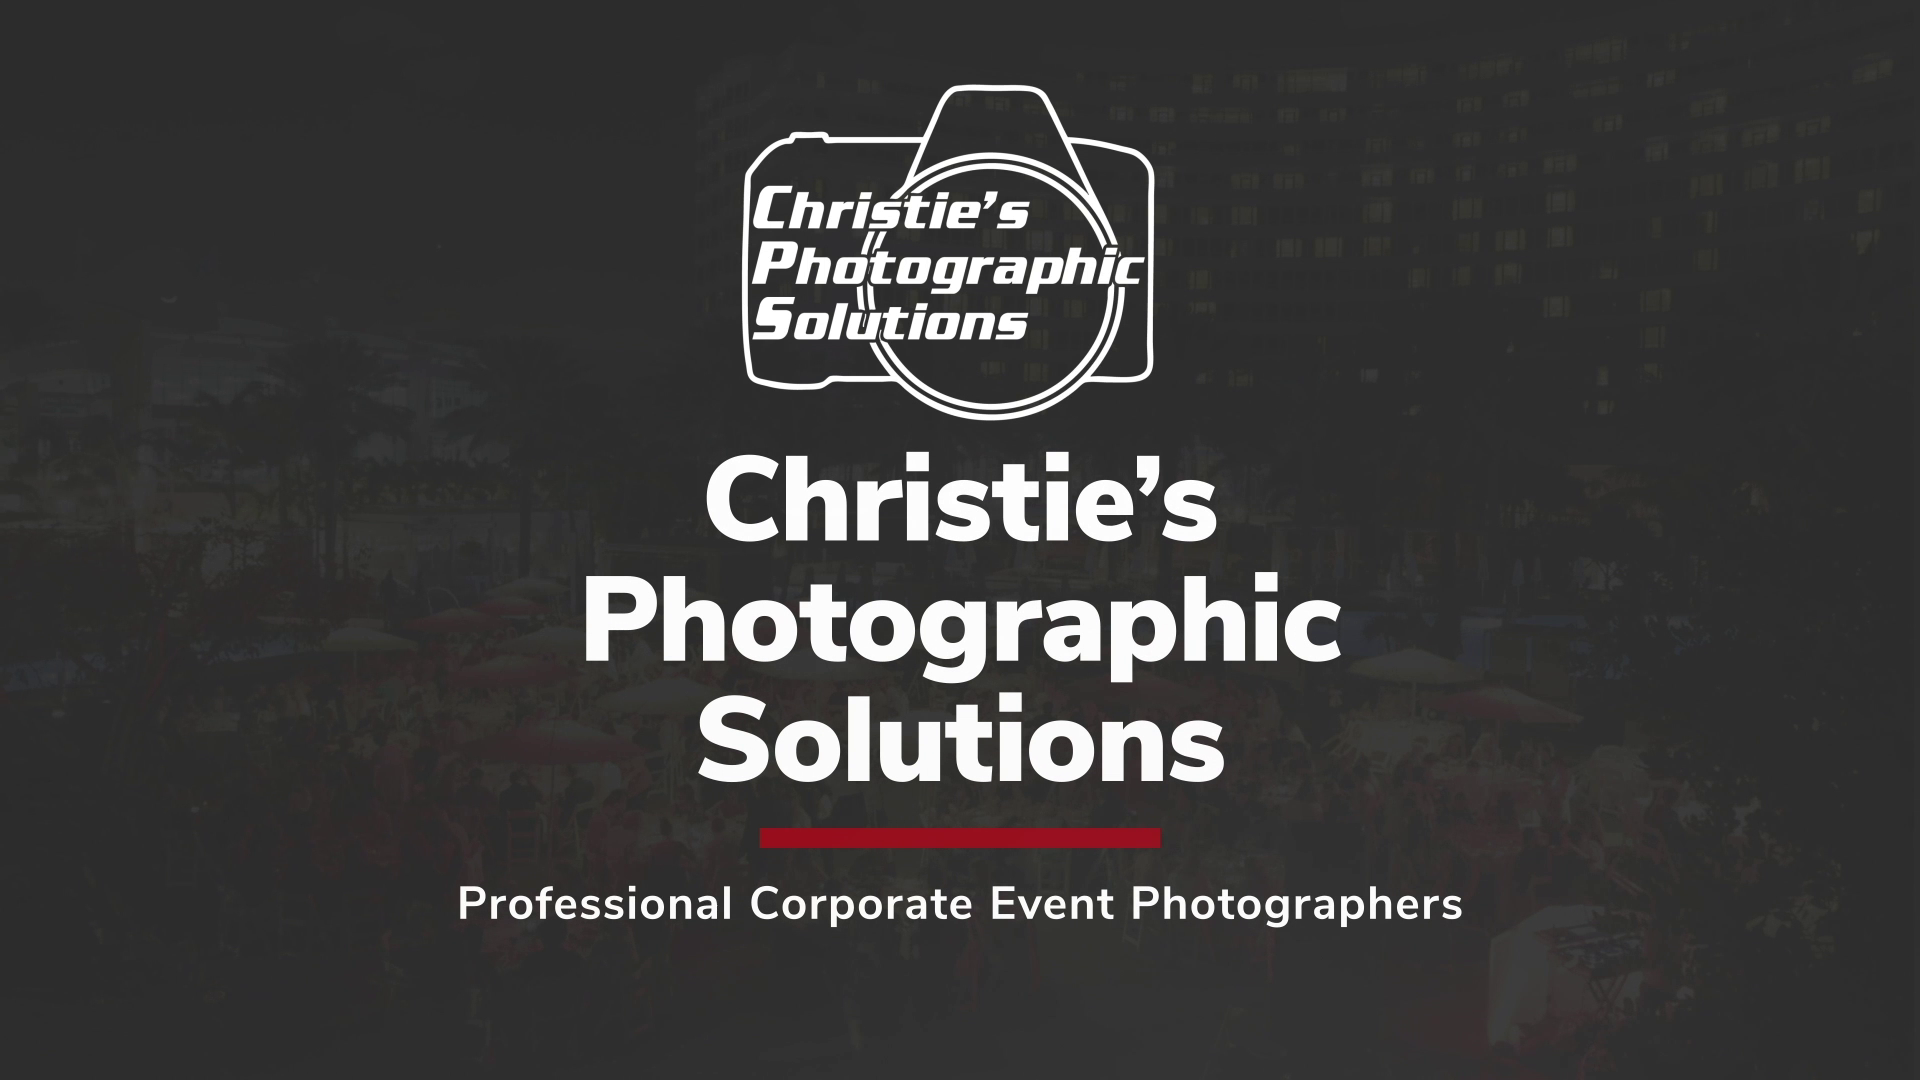 Contact Us 24 Hours A Day For Your Corporate Photography Needs